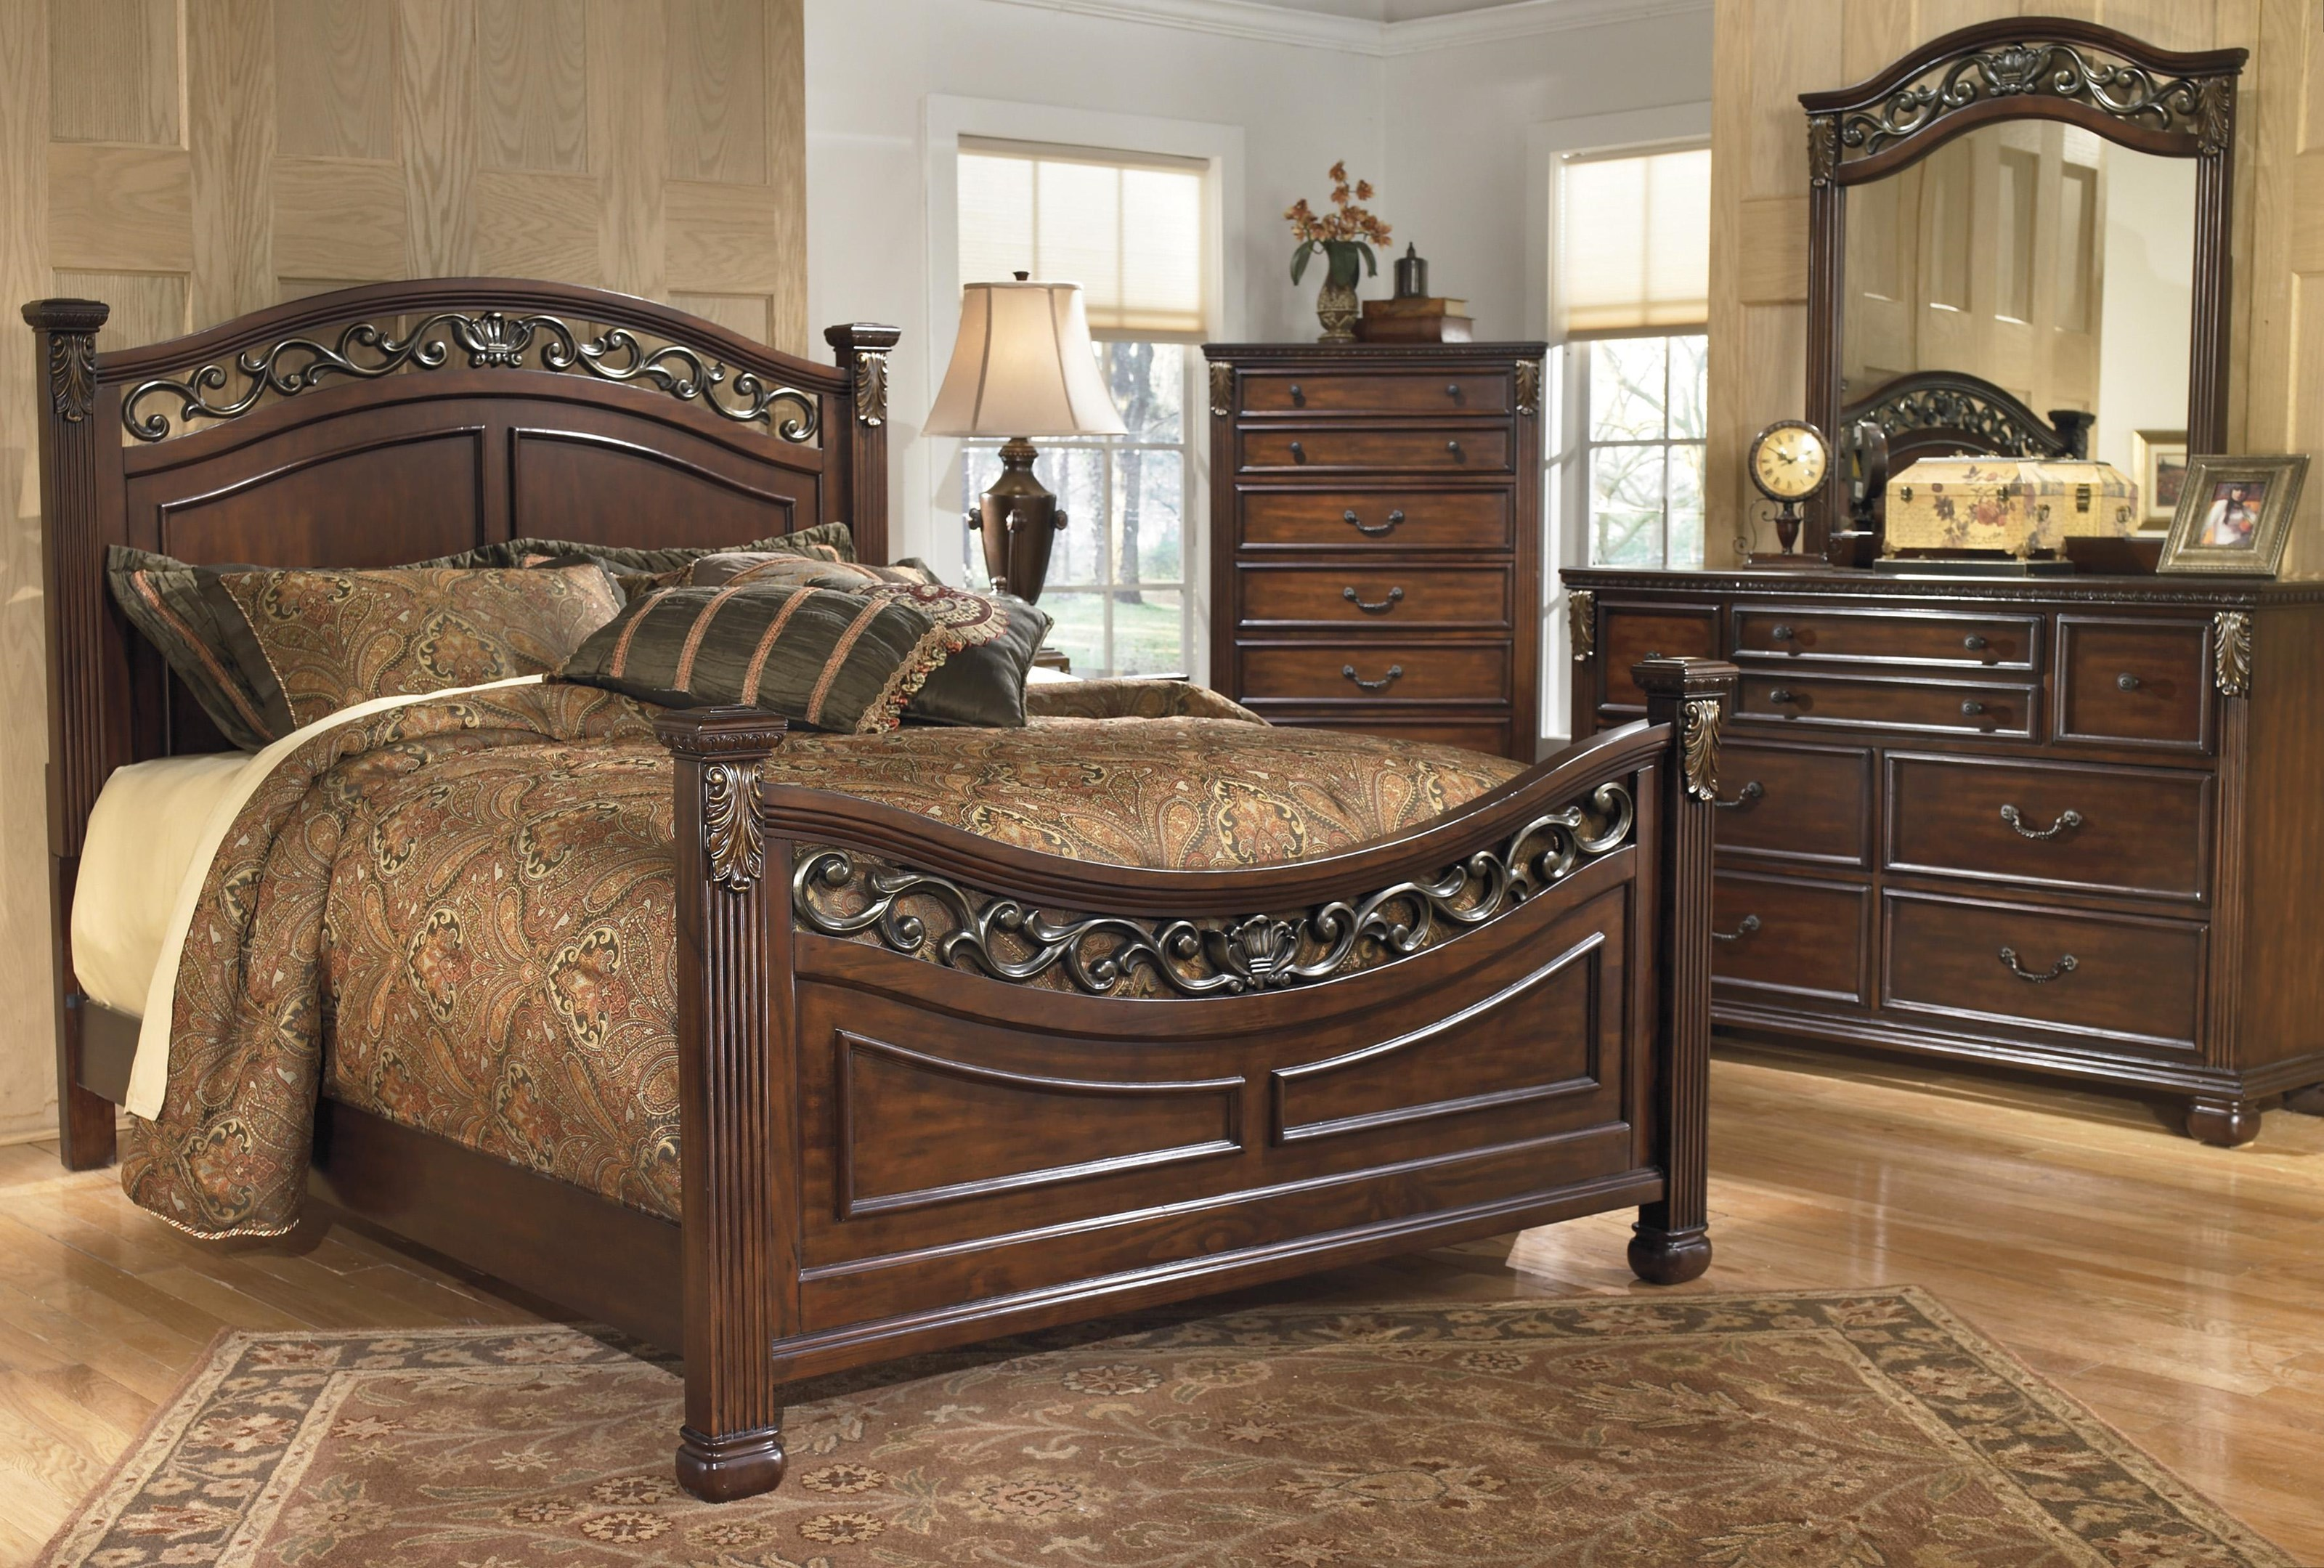 Signature Design by Ashley Leahlyn Queen 5 Piece Bedroom